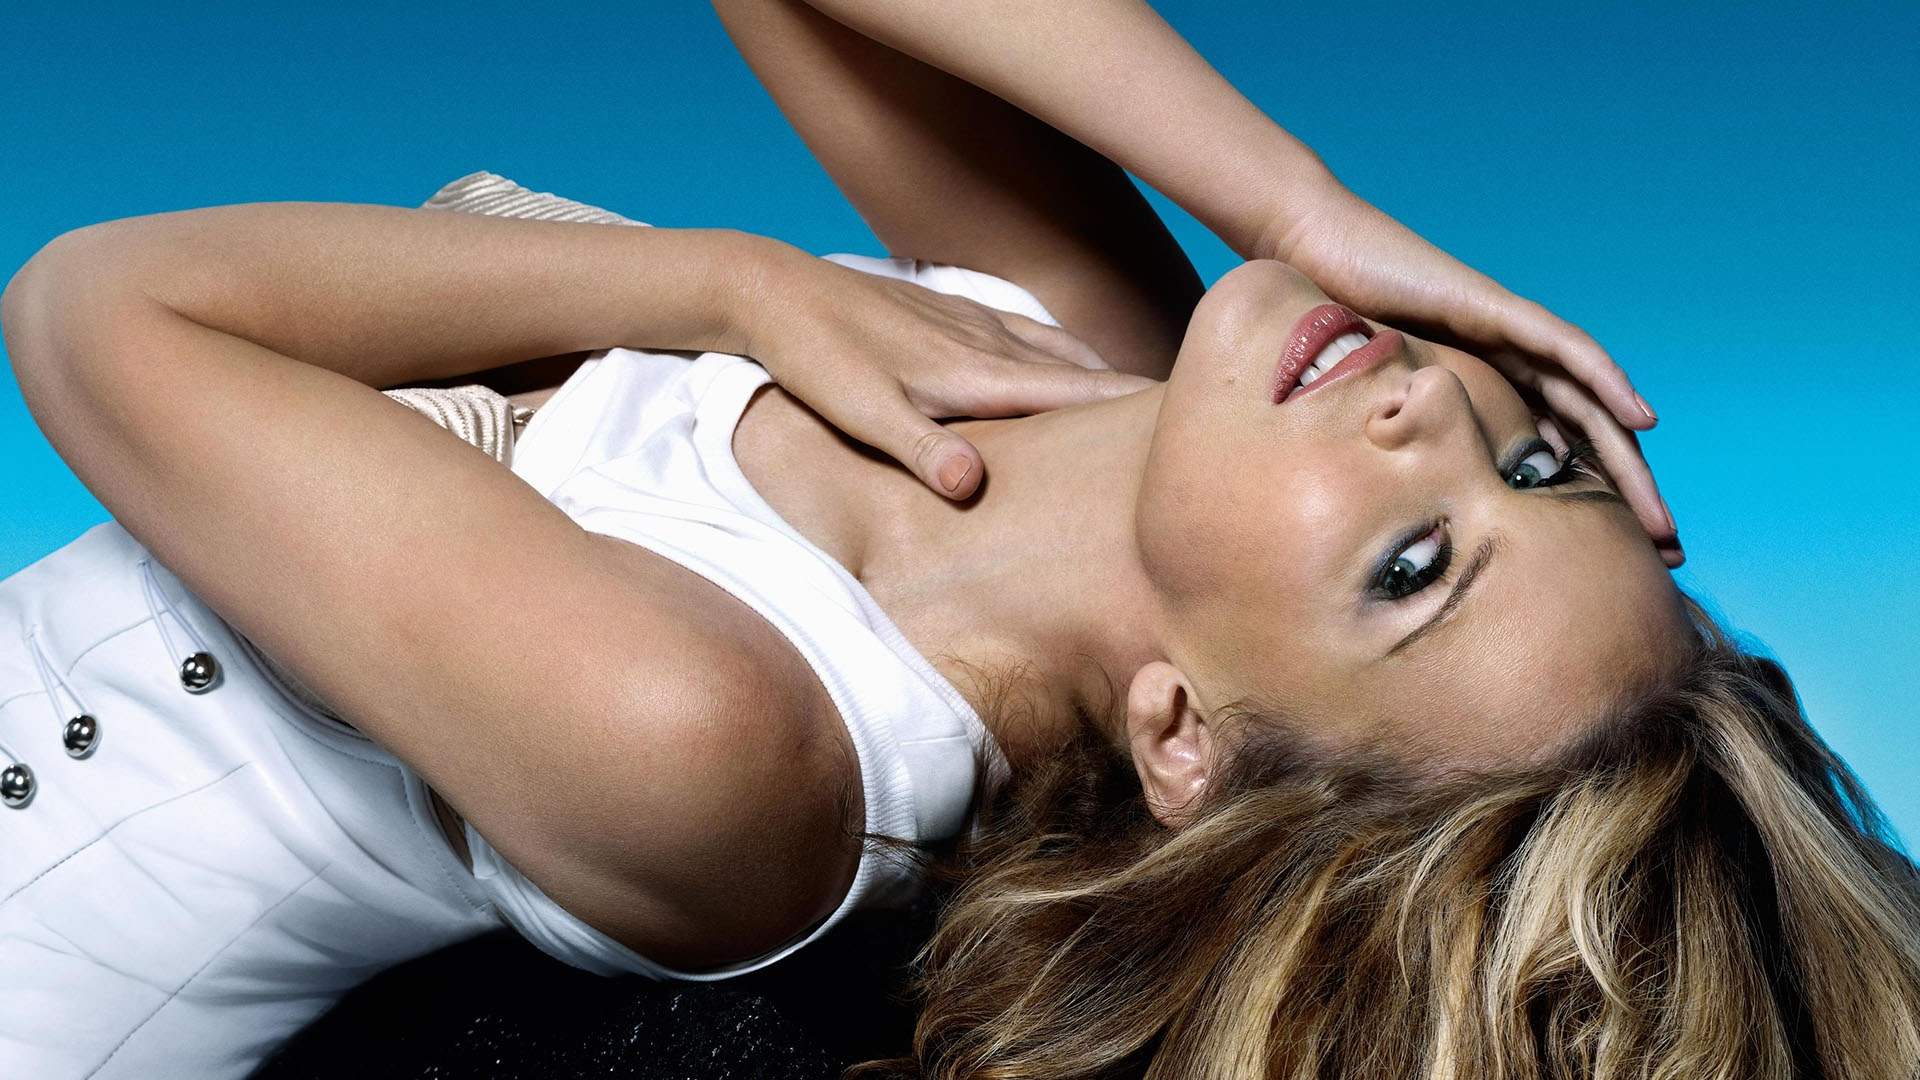 kylie minogue desktop wallpaper 51396